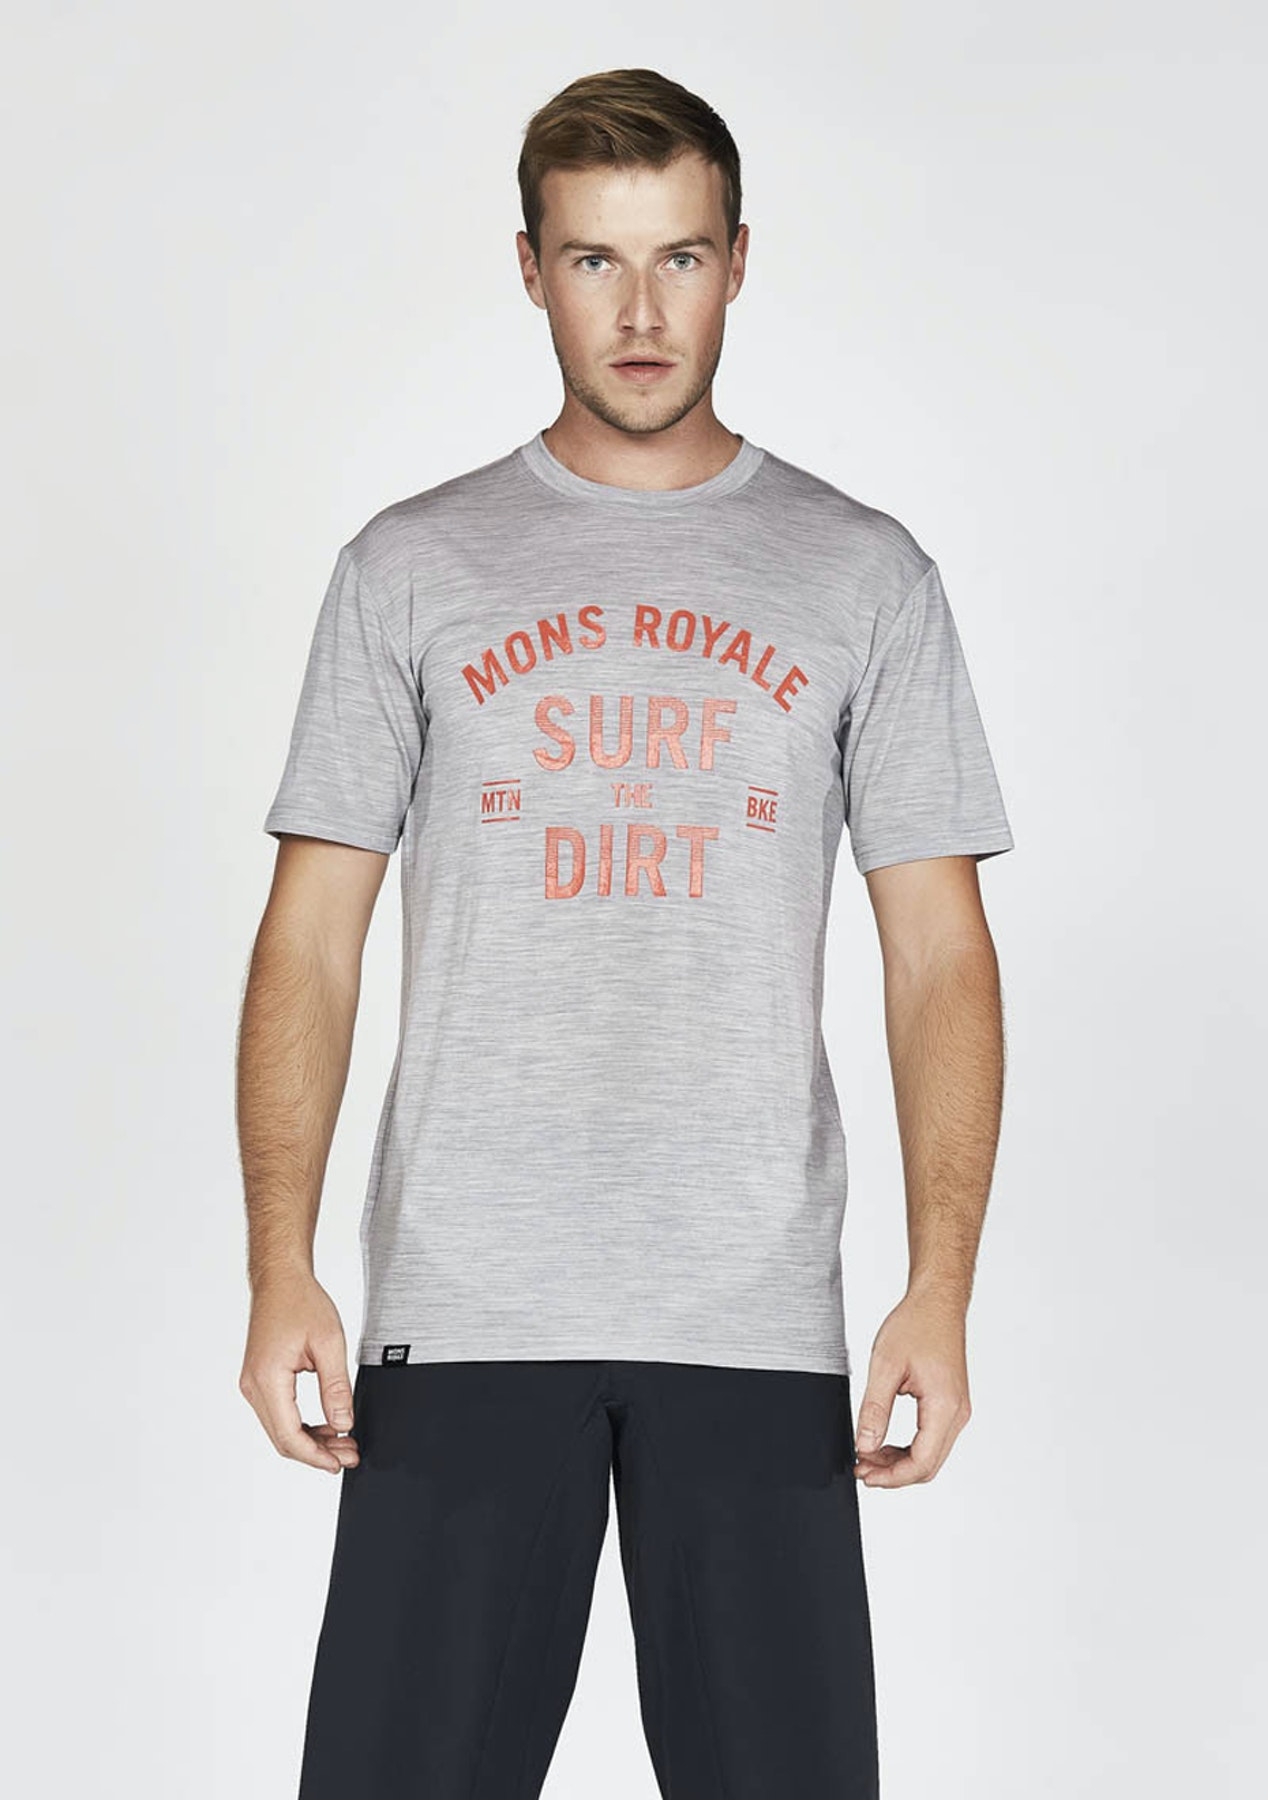 8d4f45a1bf64 Mons Royale - Mens Icon T-Shirt Surf - Grey Marl - Free Shipping Mens  Outlet - Onceit